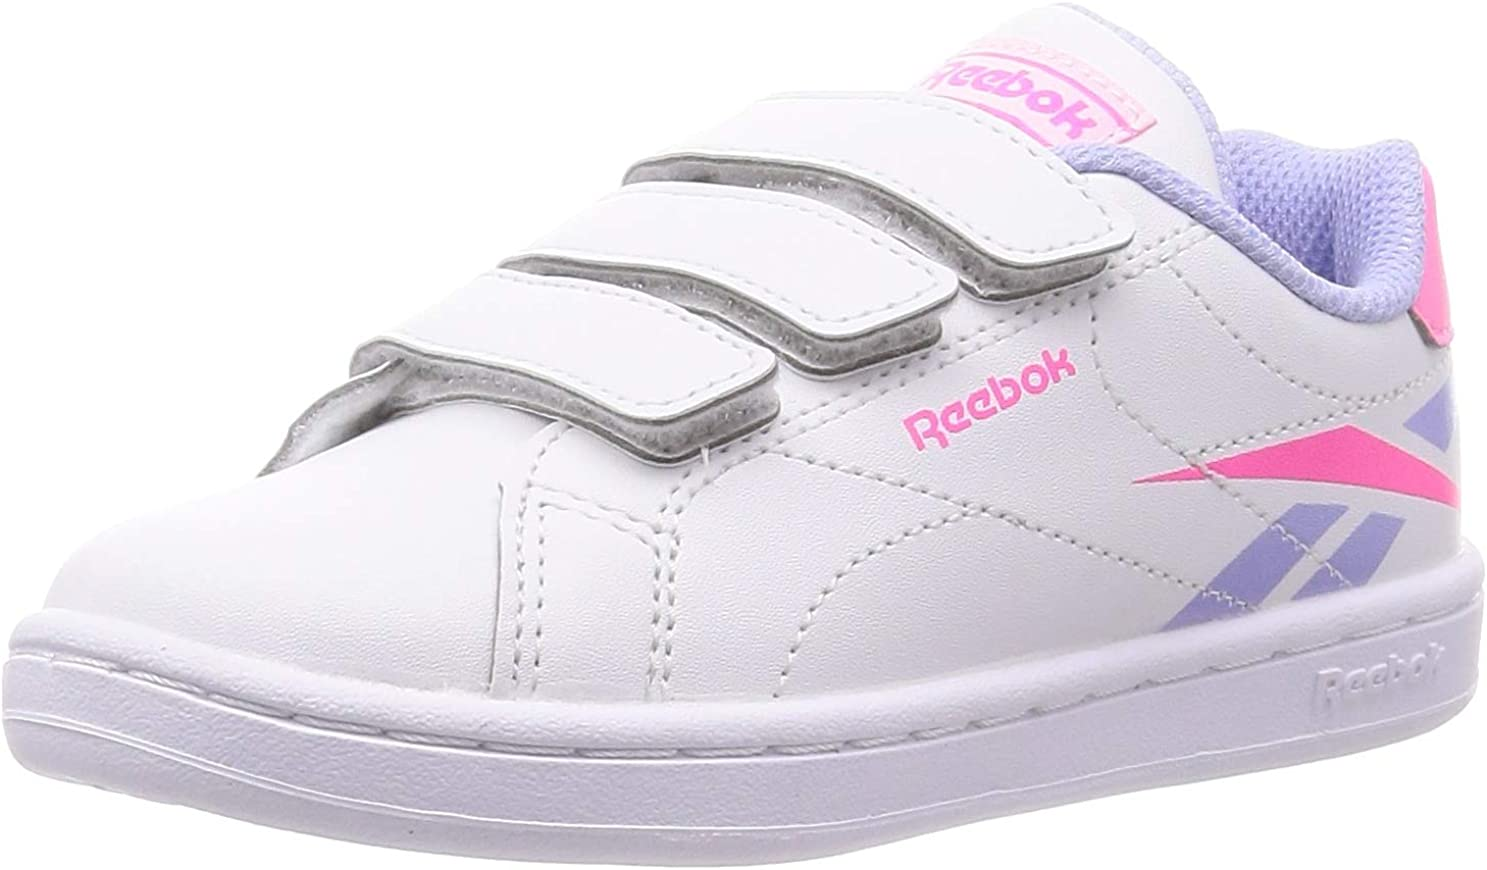 Reebok Classics Girl's Shoes Athletic Fashion Style Running School Training Royal Complete CLN 2 FW8901 New